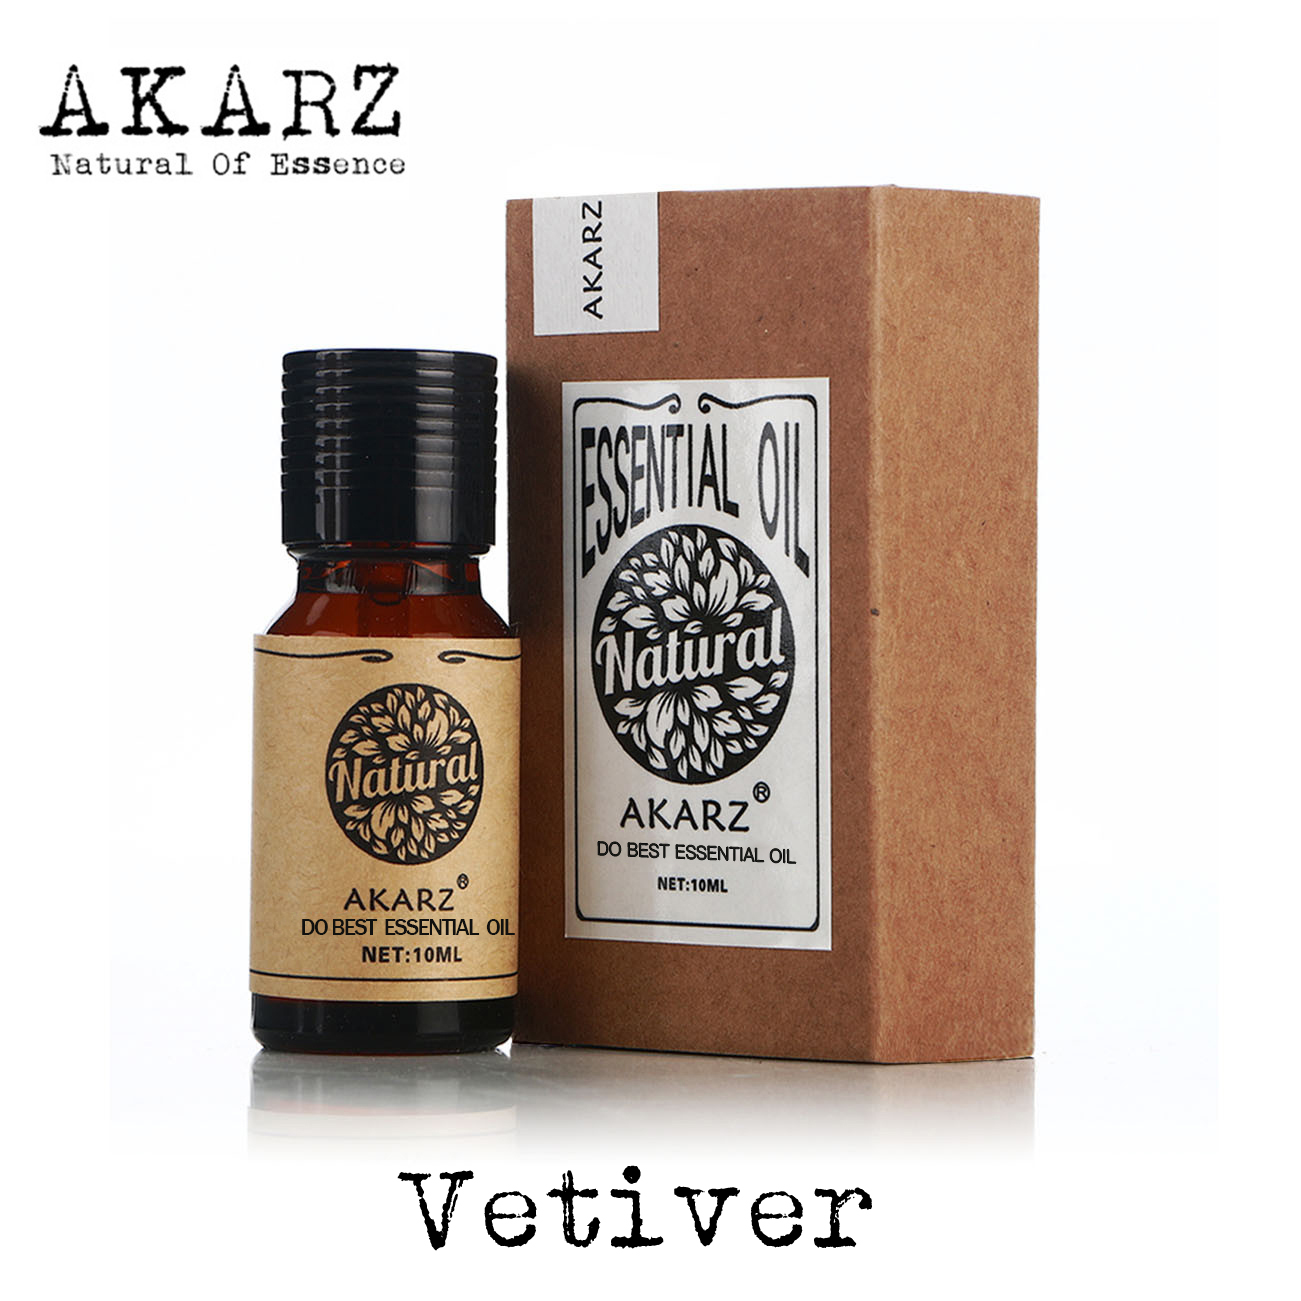 Vetiver Essential Oil AKARZ Brand Natural Oiliness Cosmetics Candle Soap Scents Making DIY Odorant Raw Material Vetiver Oil